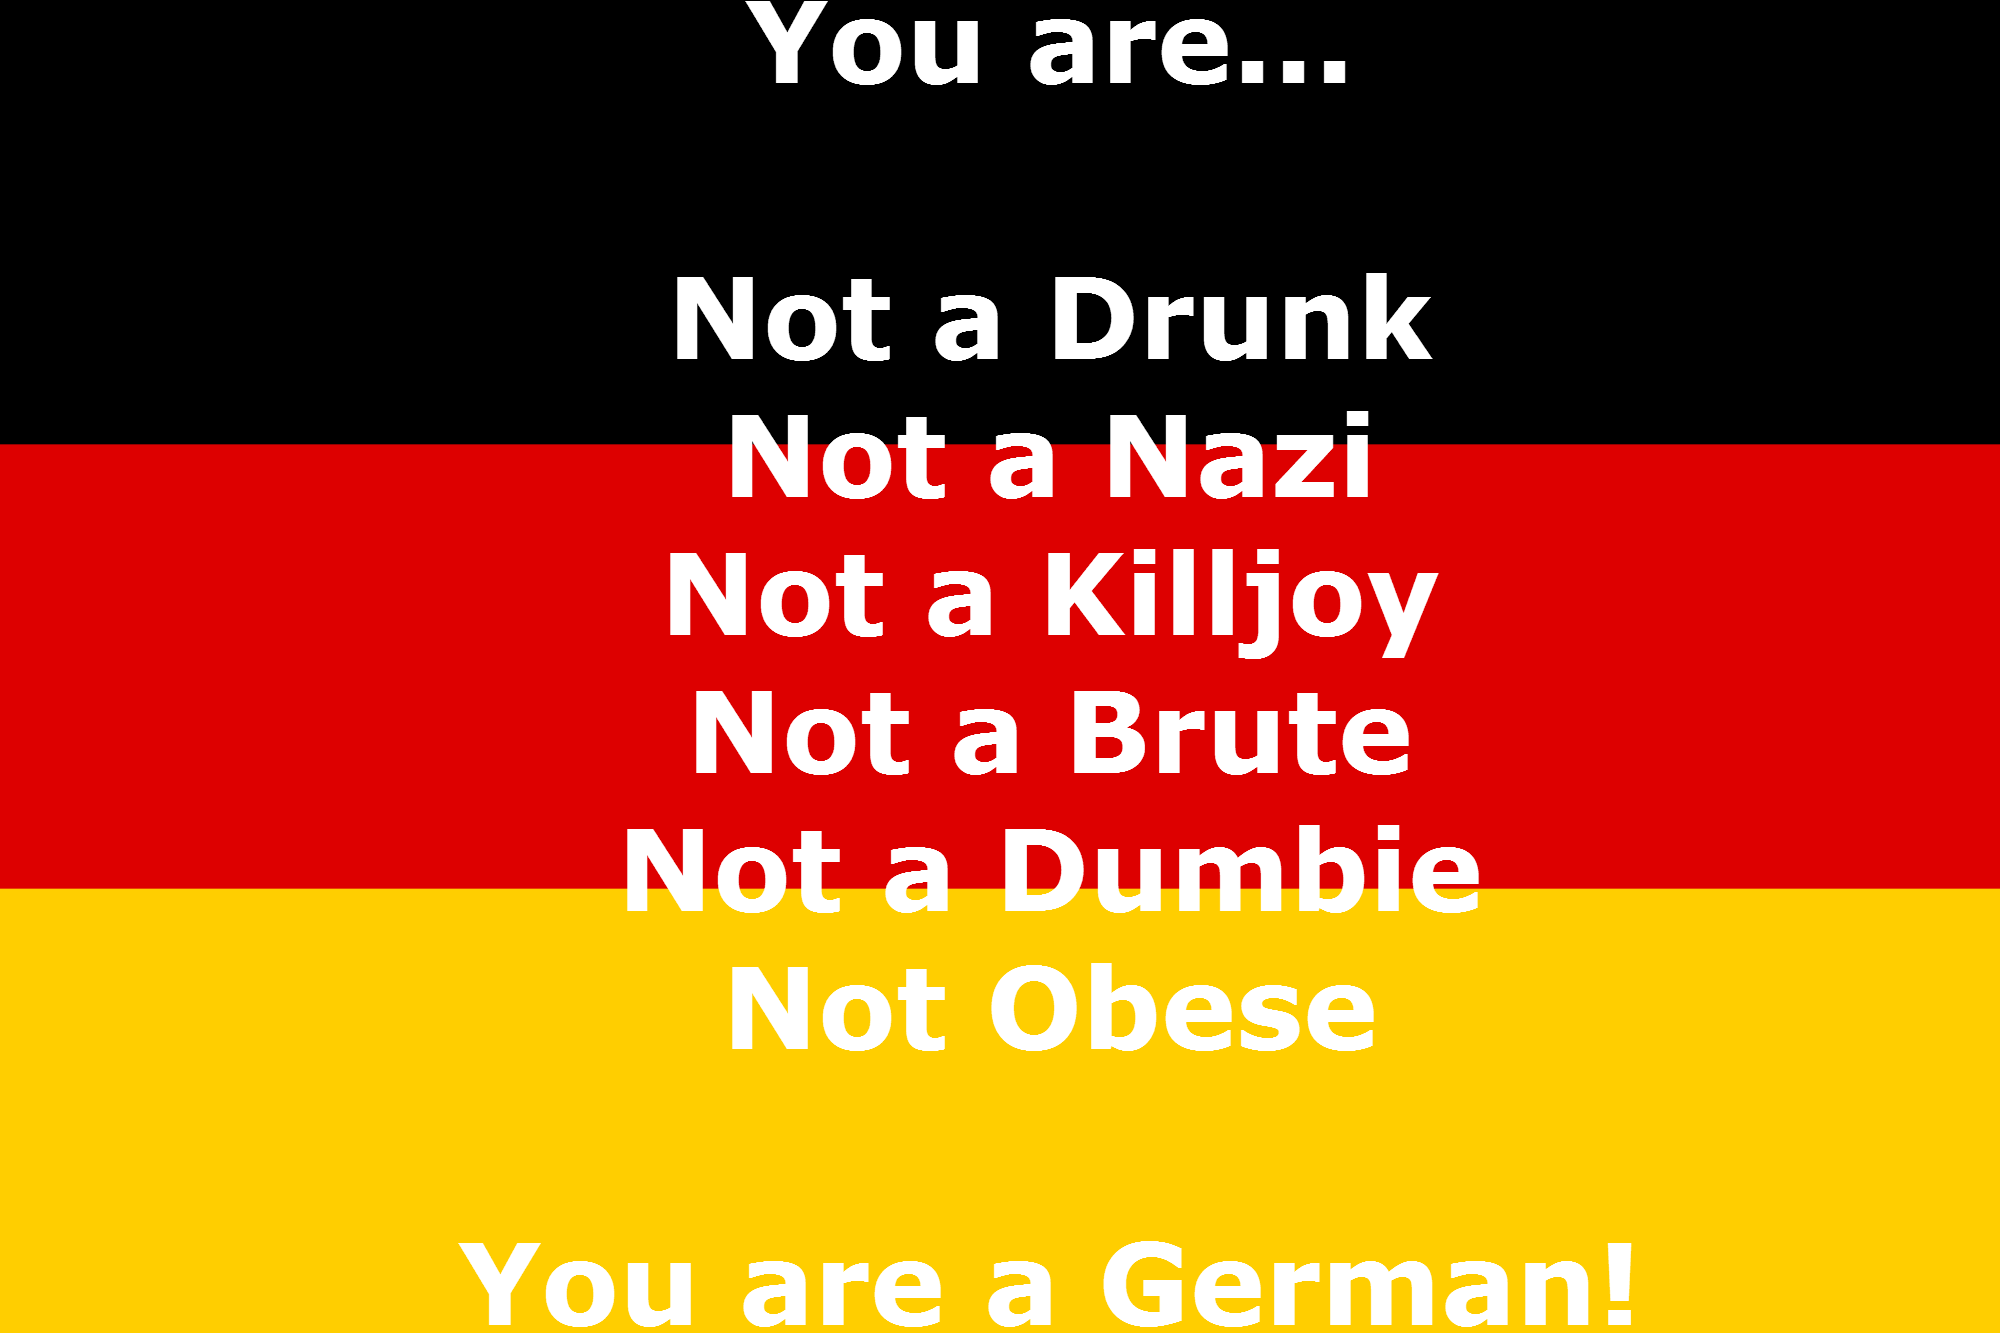 Https Commons Wikimedia Org Wiki File German Stereotypes Png